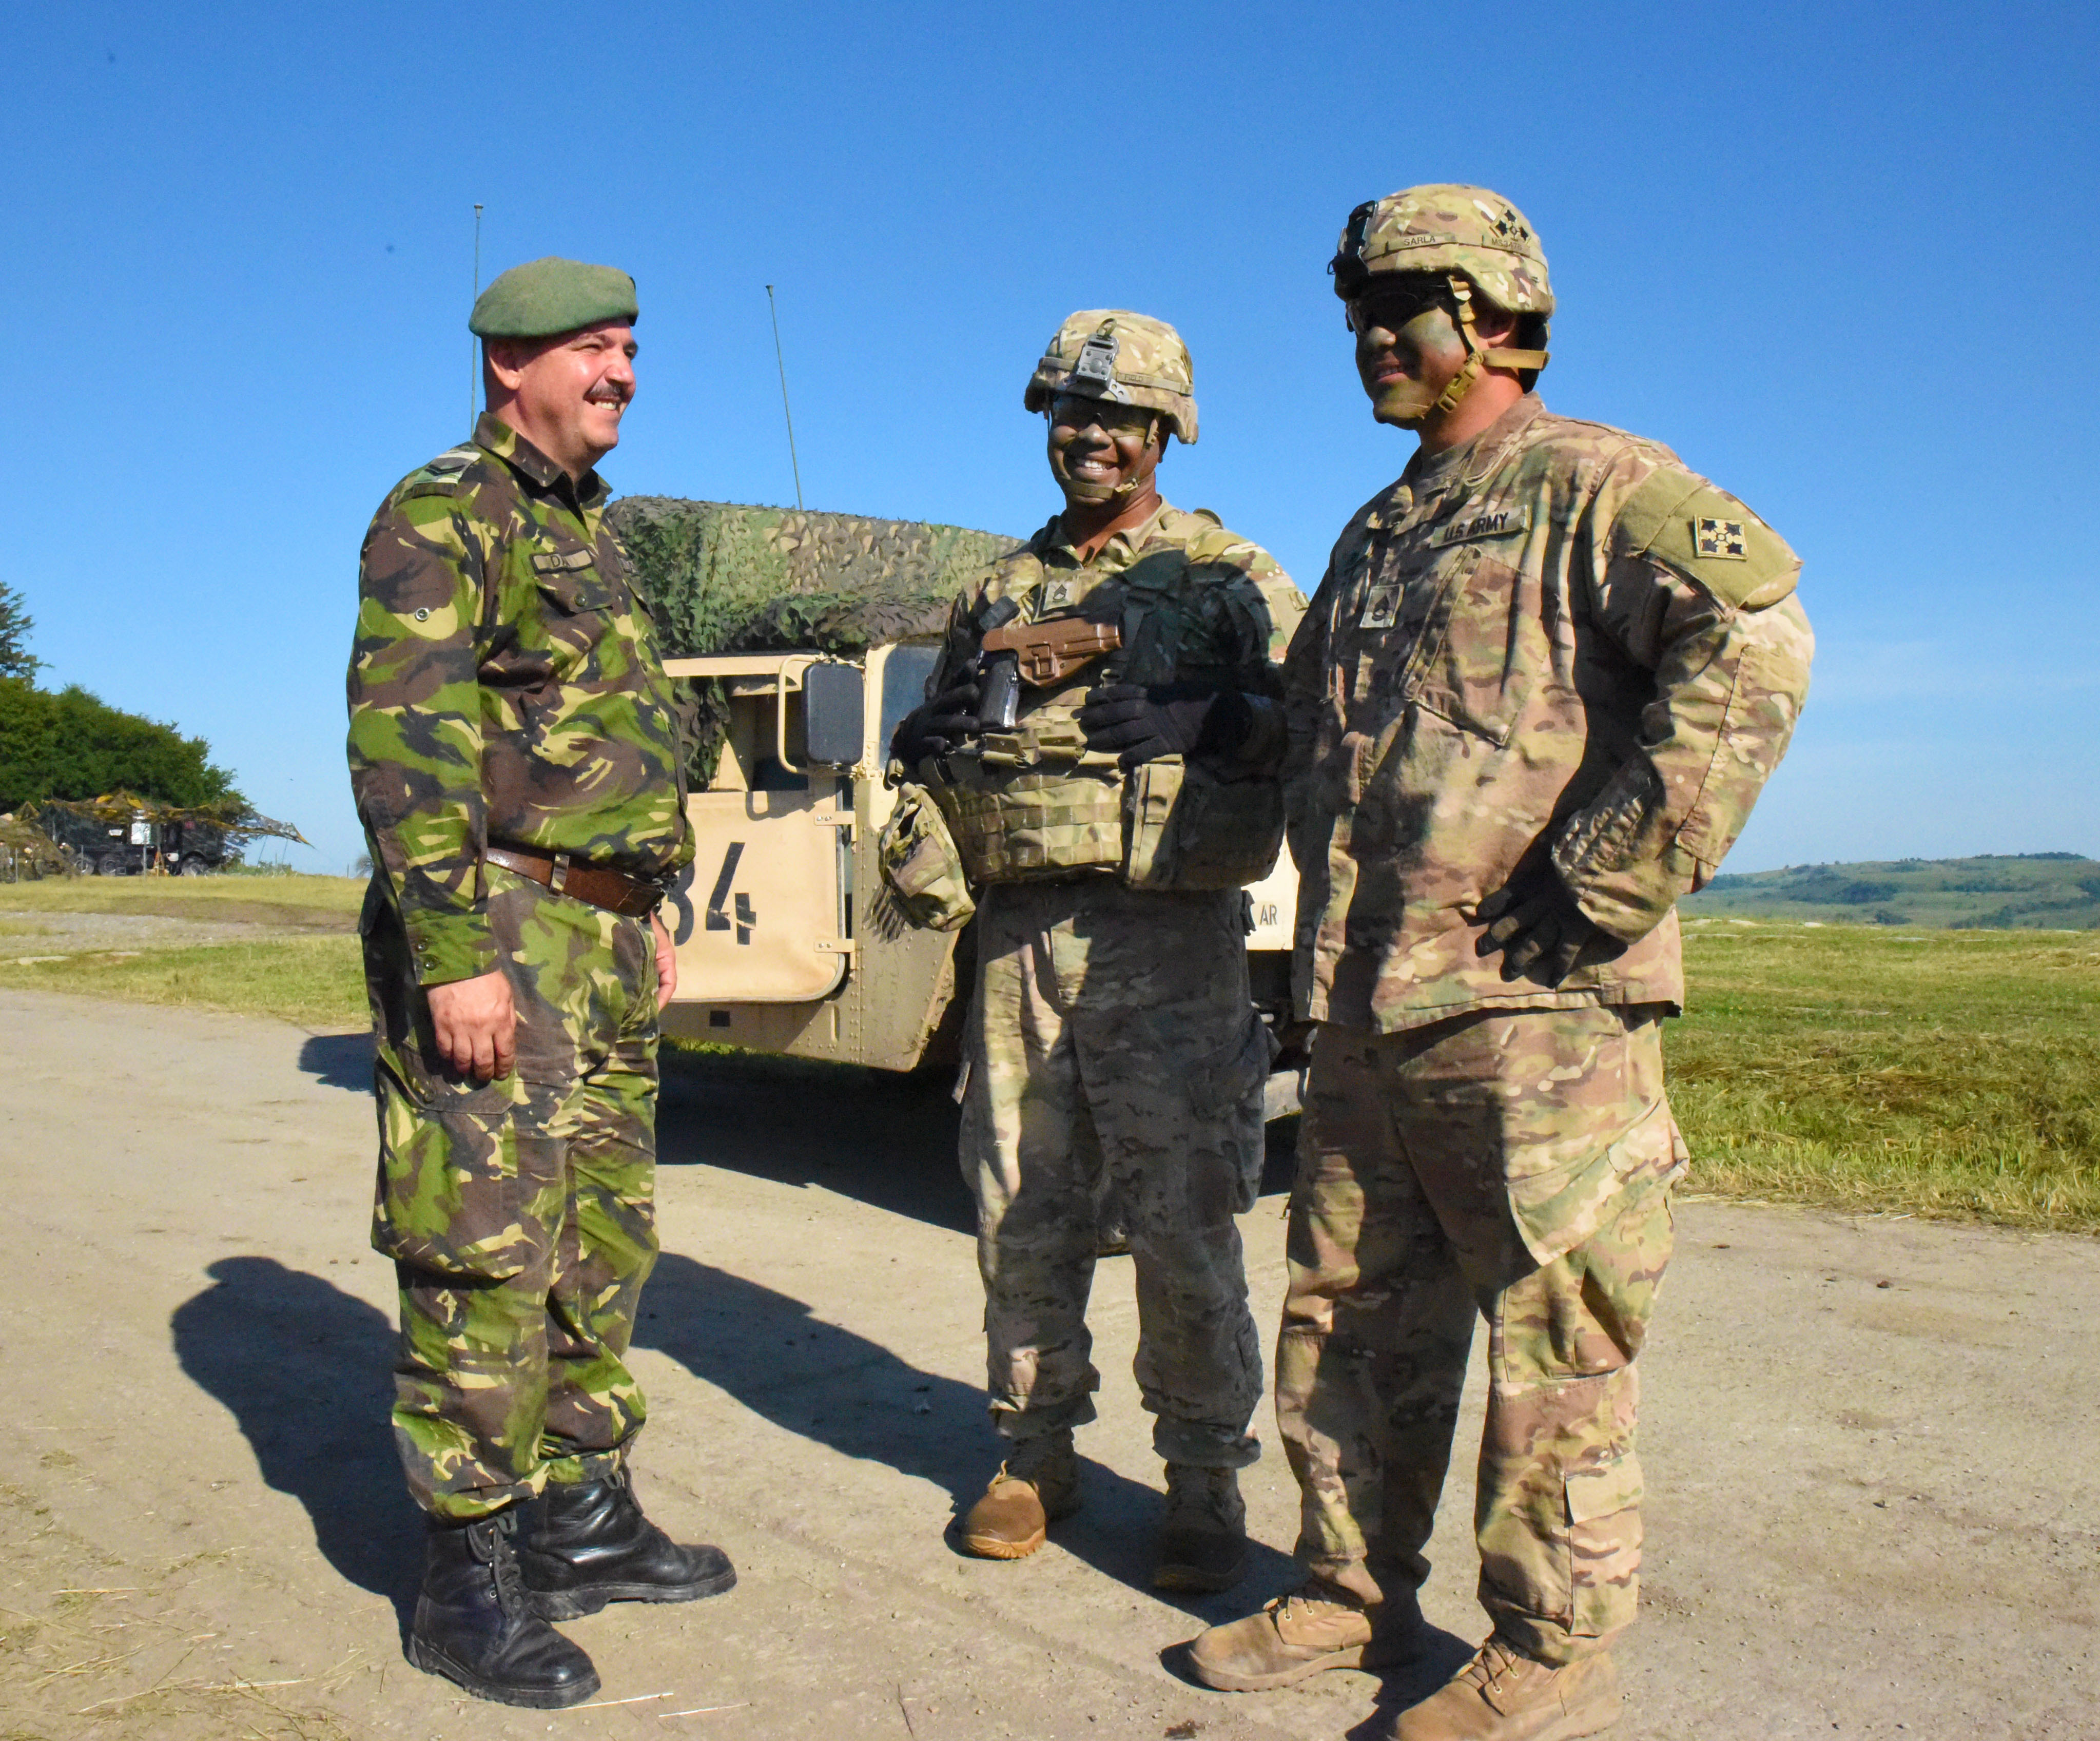 CINCU, Romania - U.S. Army Soldiers of 1st battalion, 66th armored regiment, 3rd Armored Brigade Combat Team speaks with Soldiers of the Romanian army during Getica Saber 17, July 10, 2017. Getica Saber 17 is a U.S-led fire  support coordination exercise and combined arms live fire exercise that incorporates six Allied and partner nations with more than 4,000 Soldiers. Getica Saber 17 runs concurrent with Saber Guardian 17, a U.S. Army Europe-led, multinational exercise that spans across Bulgaria, Hungary and Romania with more than 25,000 service members from 22 Allied and partner nations.